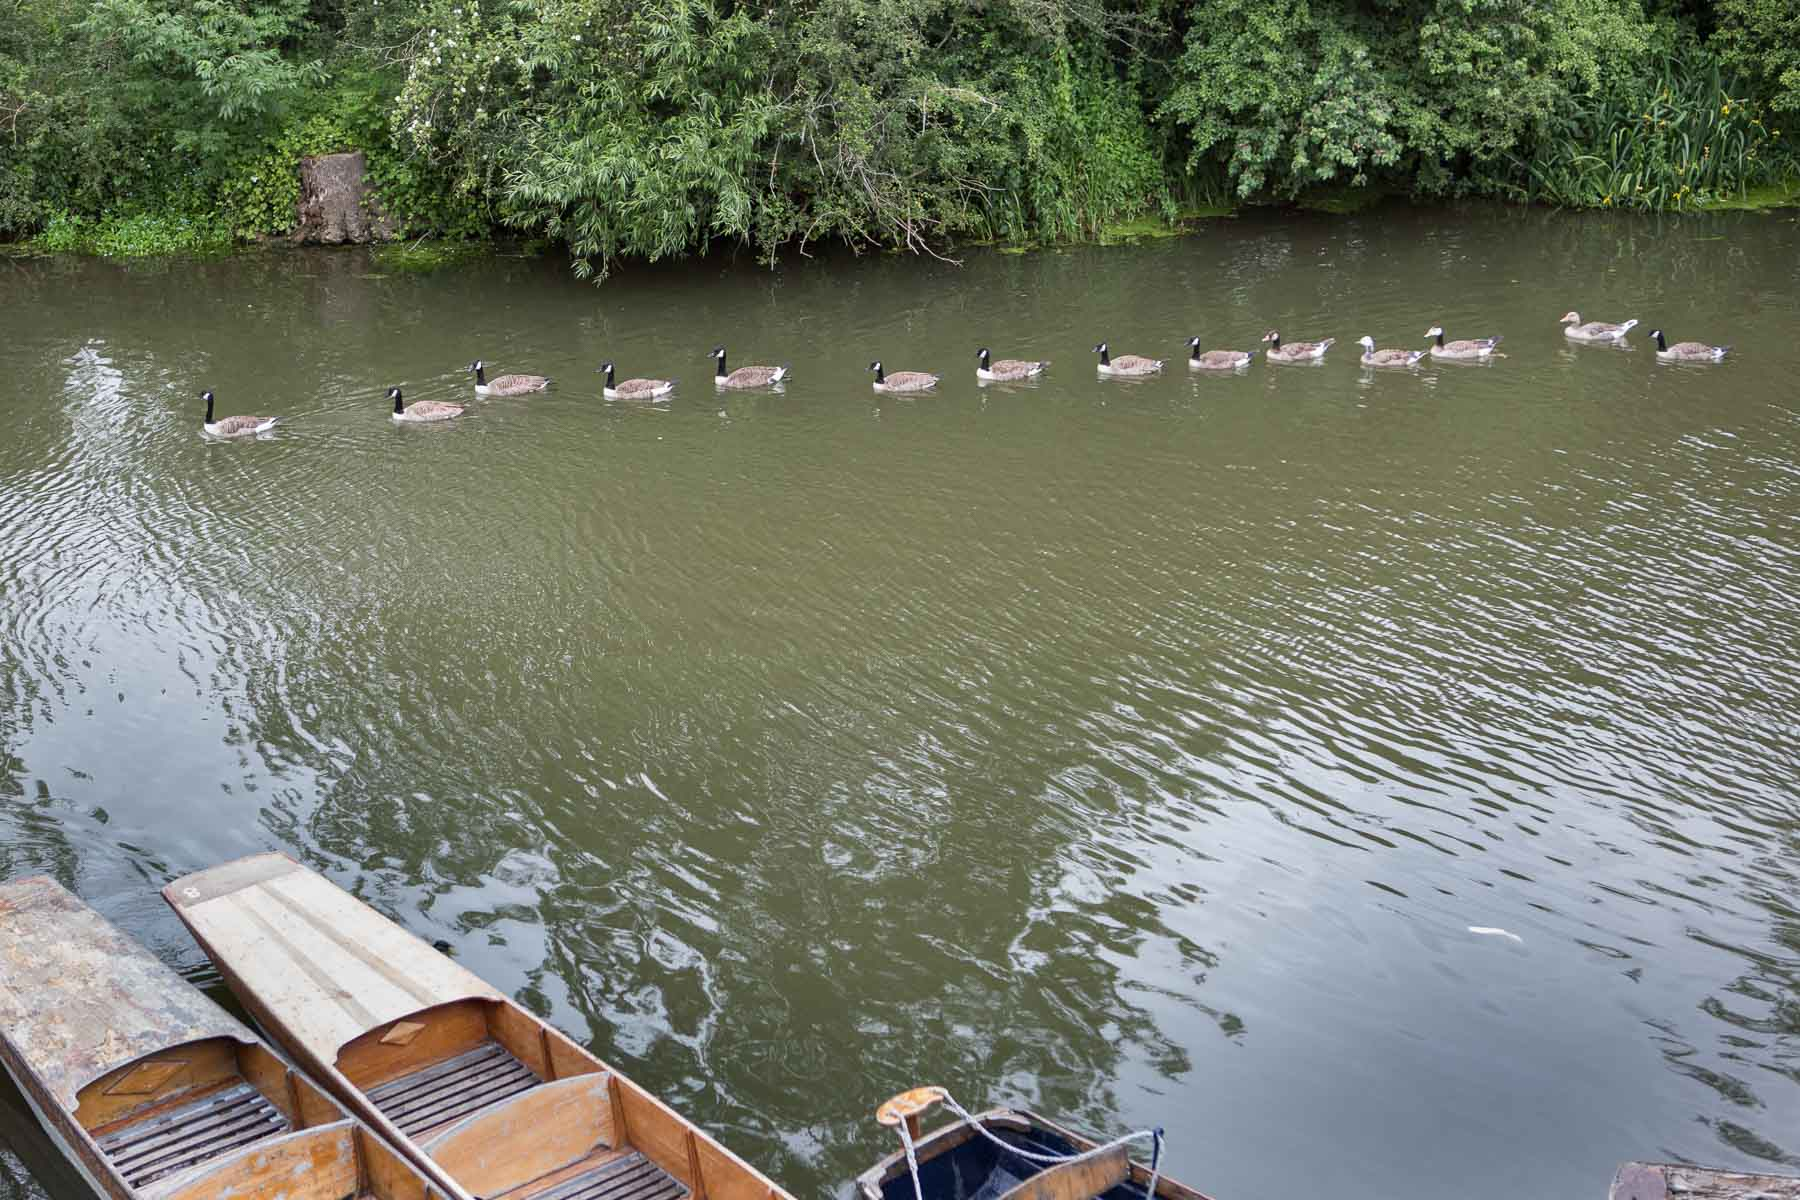 Line of geese swimming on the river Cherwell, passing near the punts